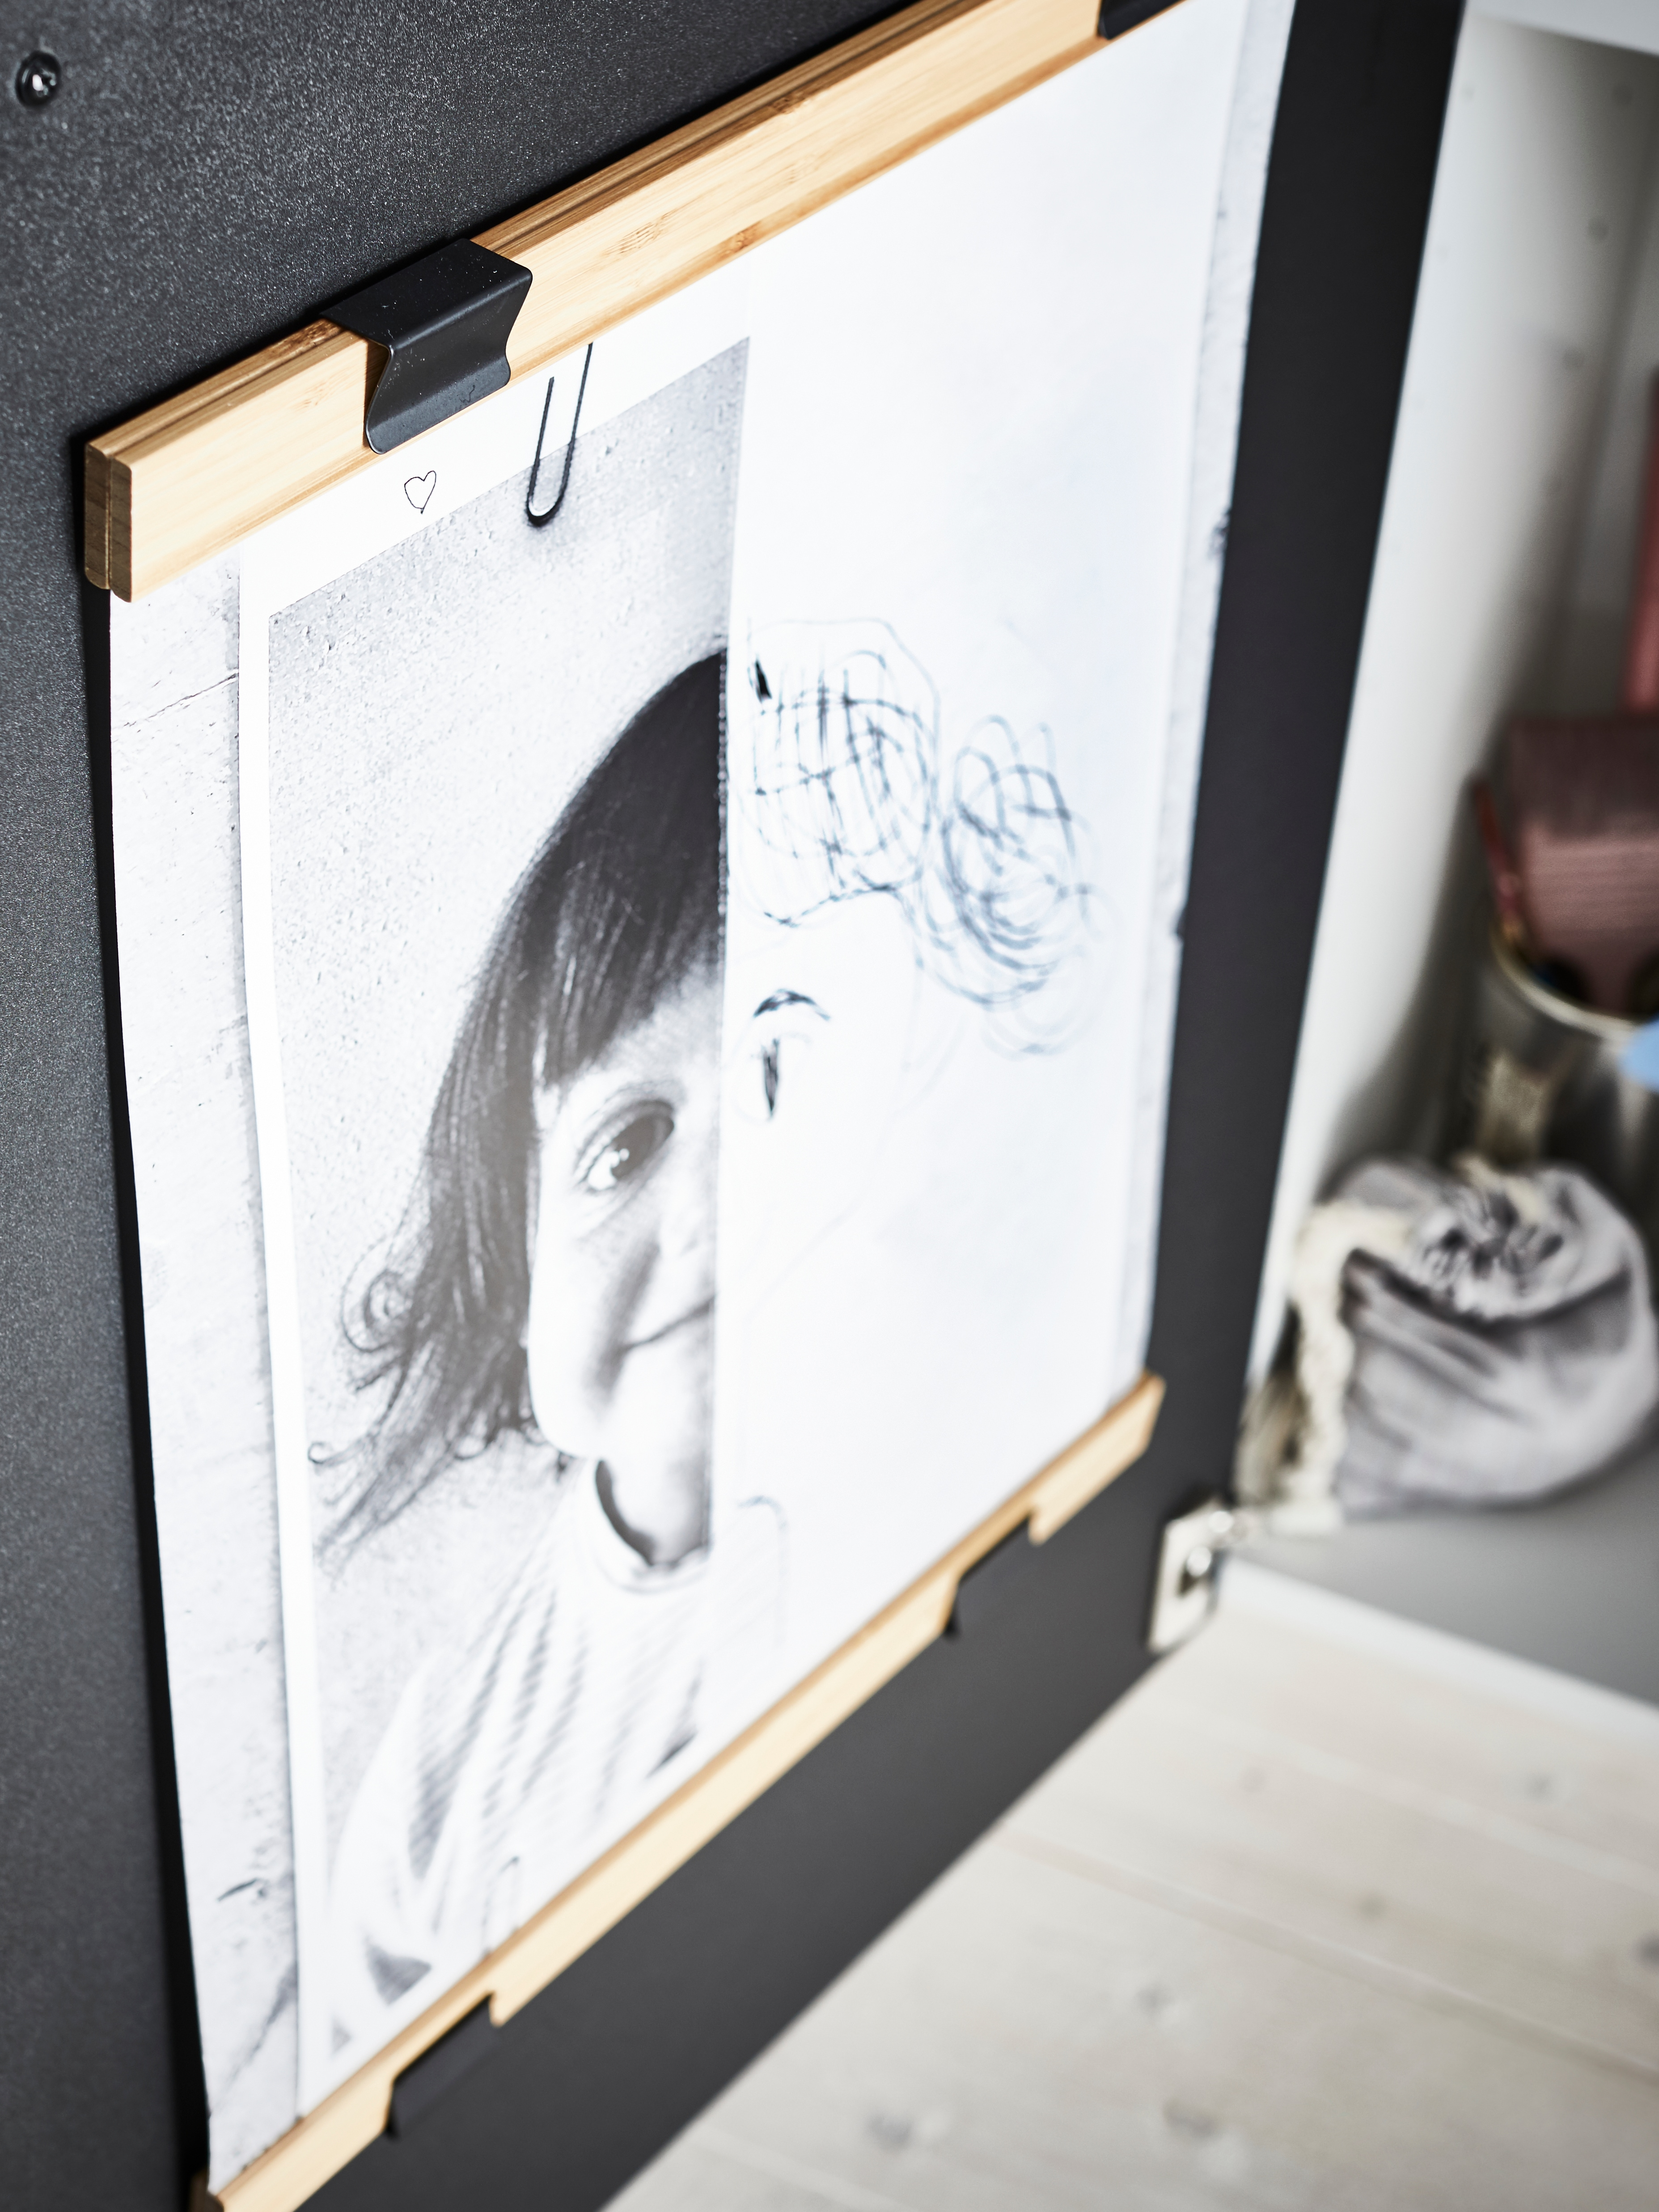 The inside of a kitchen cupboard door has two bamboo VISBÄCK poster hangers – one up, one down – framing a child's drawing.